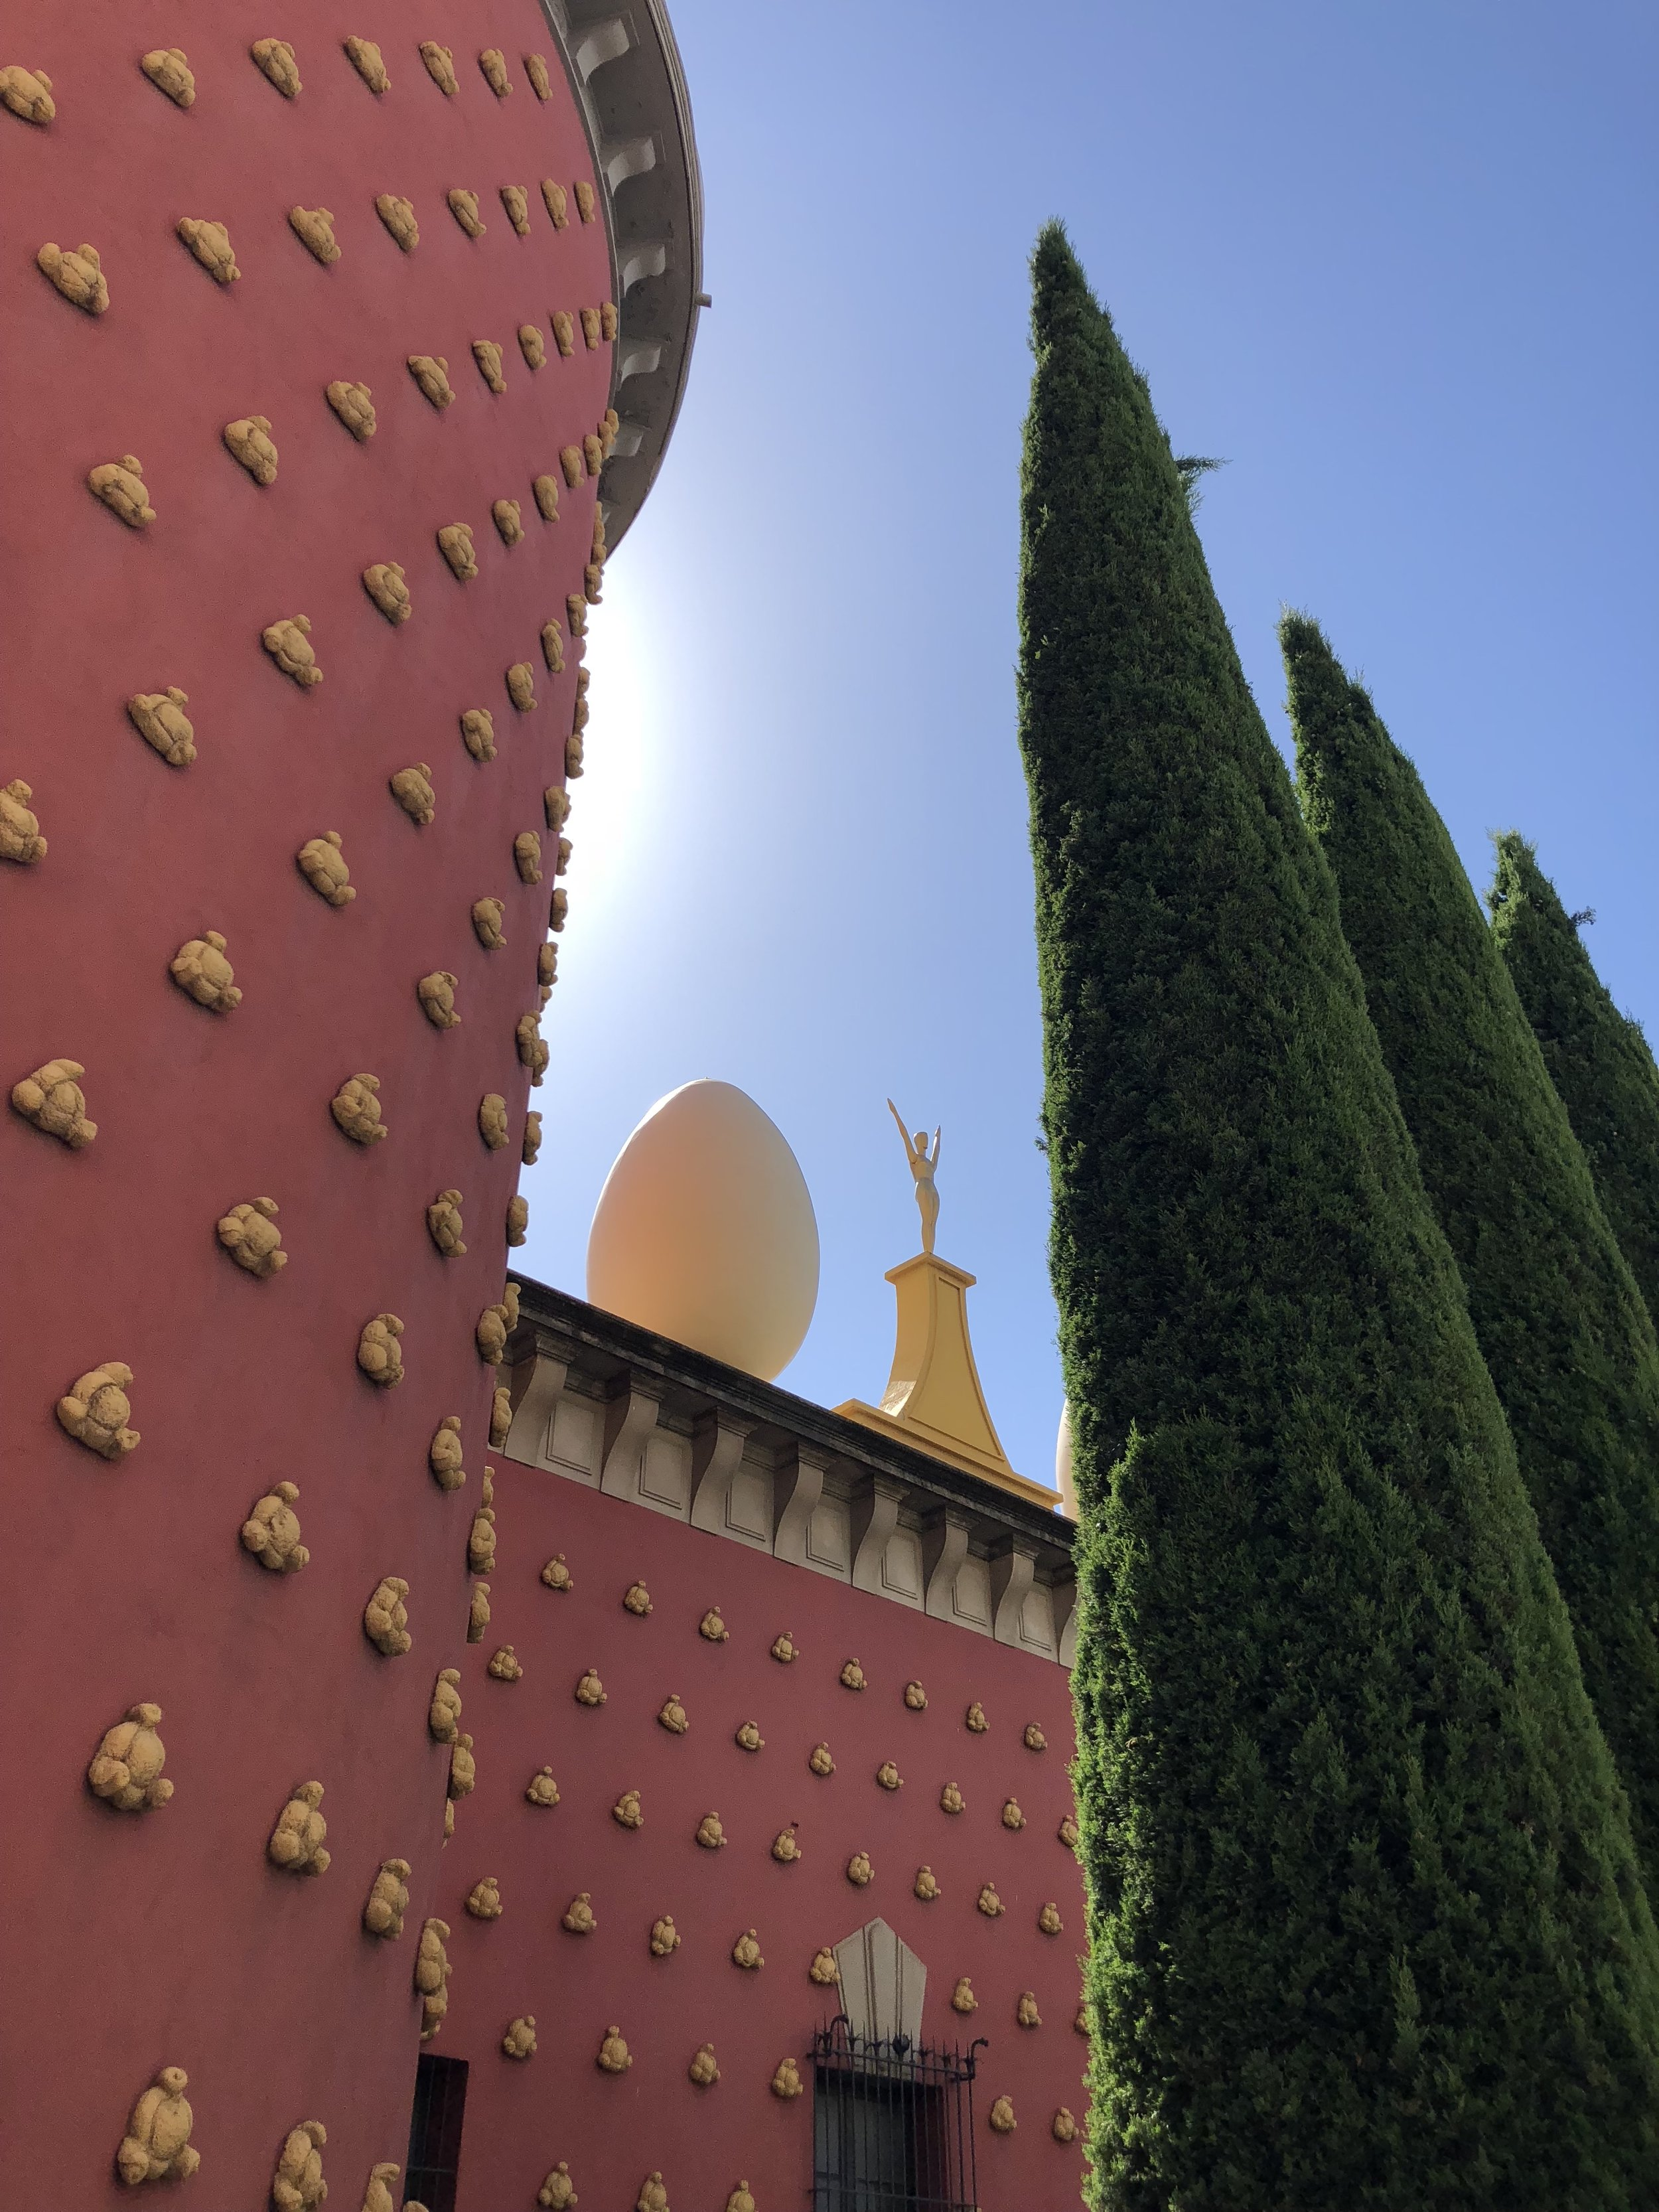 Dalí Theater and Museum in Figueres